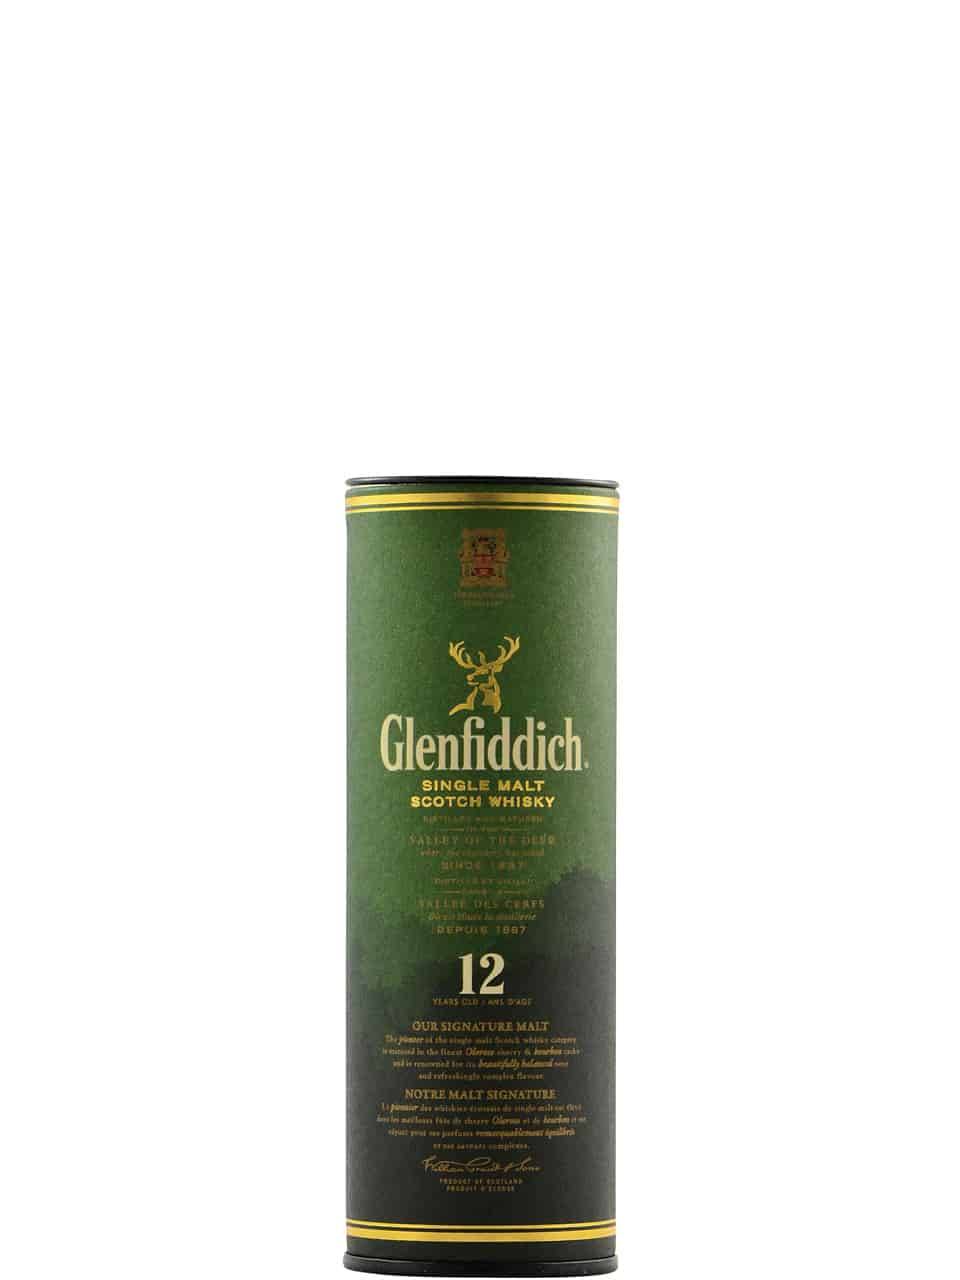 Glenfiddich Single Malt 12YO Scotch